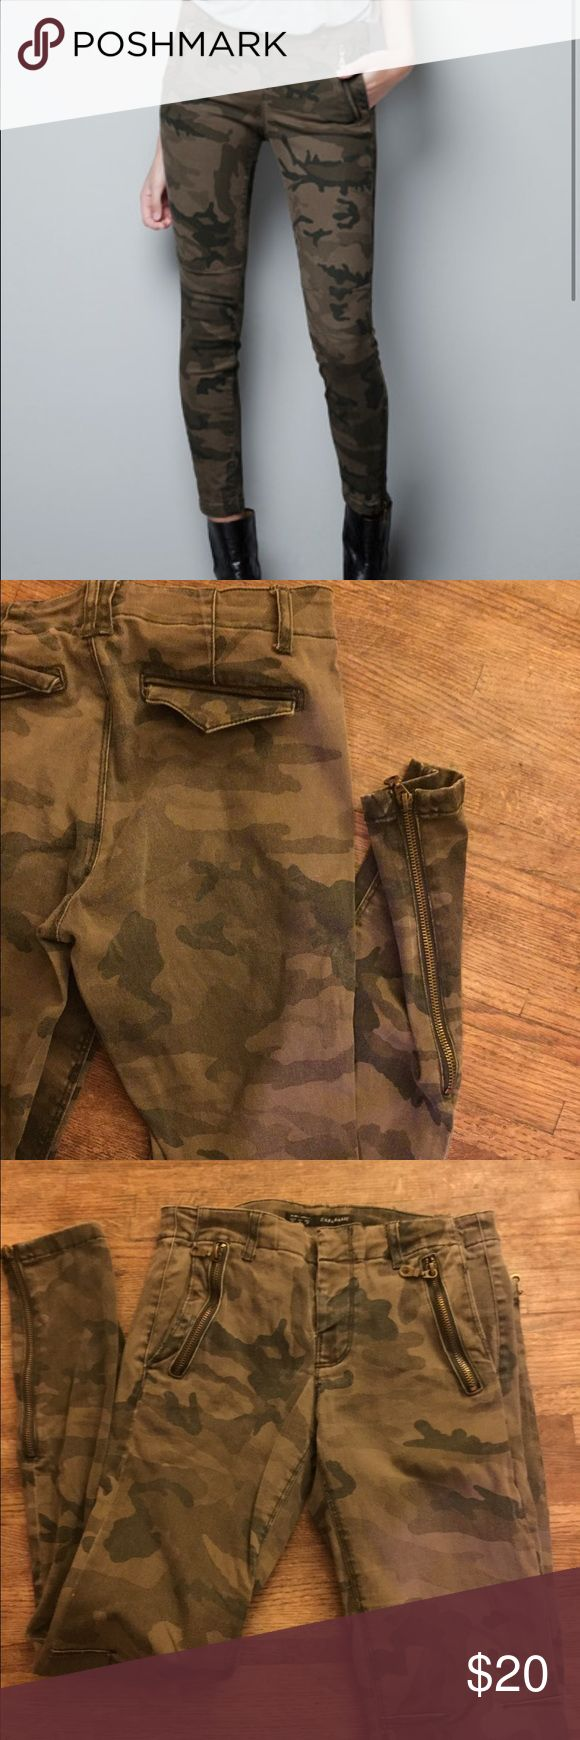 Zara Camouflage Skinny Pants Zara pants. Zipper on side of leg and front pockets. Hidden pockets with flap in back.  Tag says 4 but they fit like a 2 I would say around a 26 waist. Zara Pants Skinny